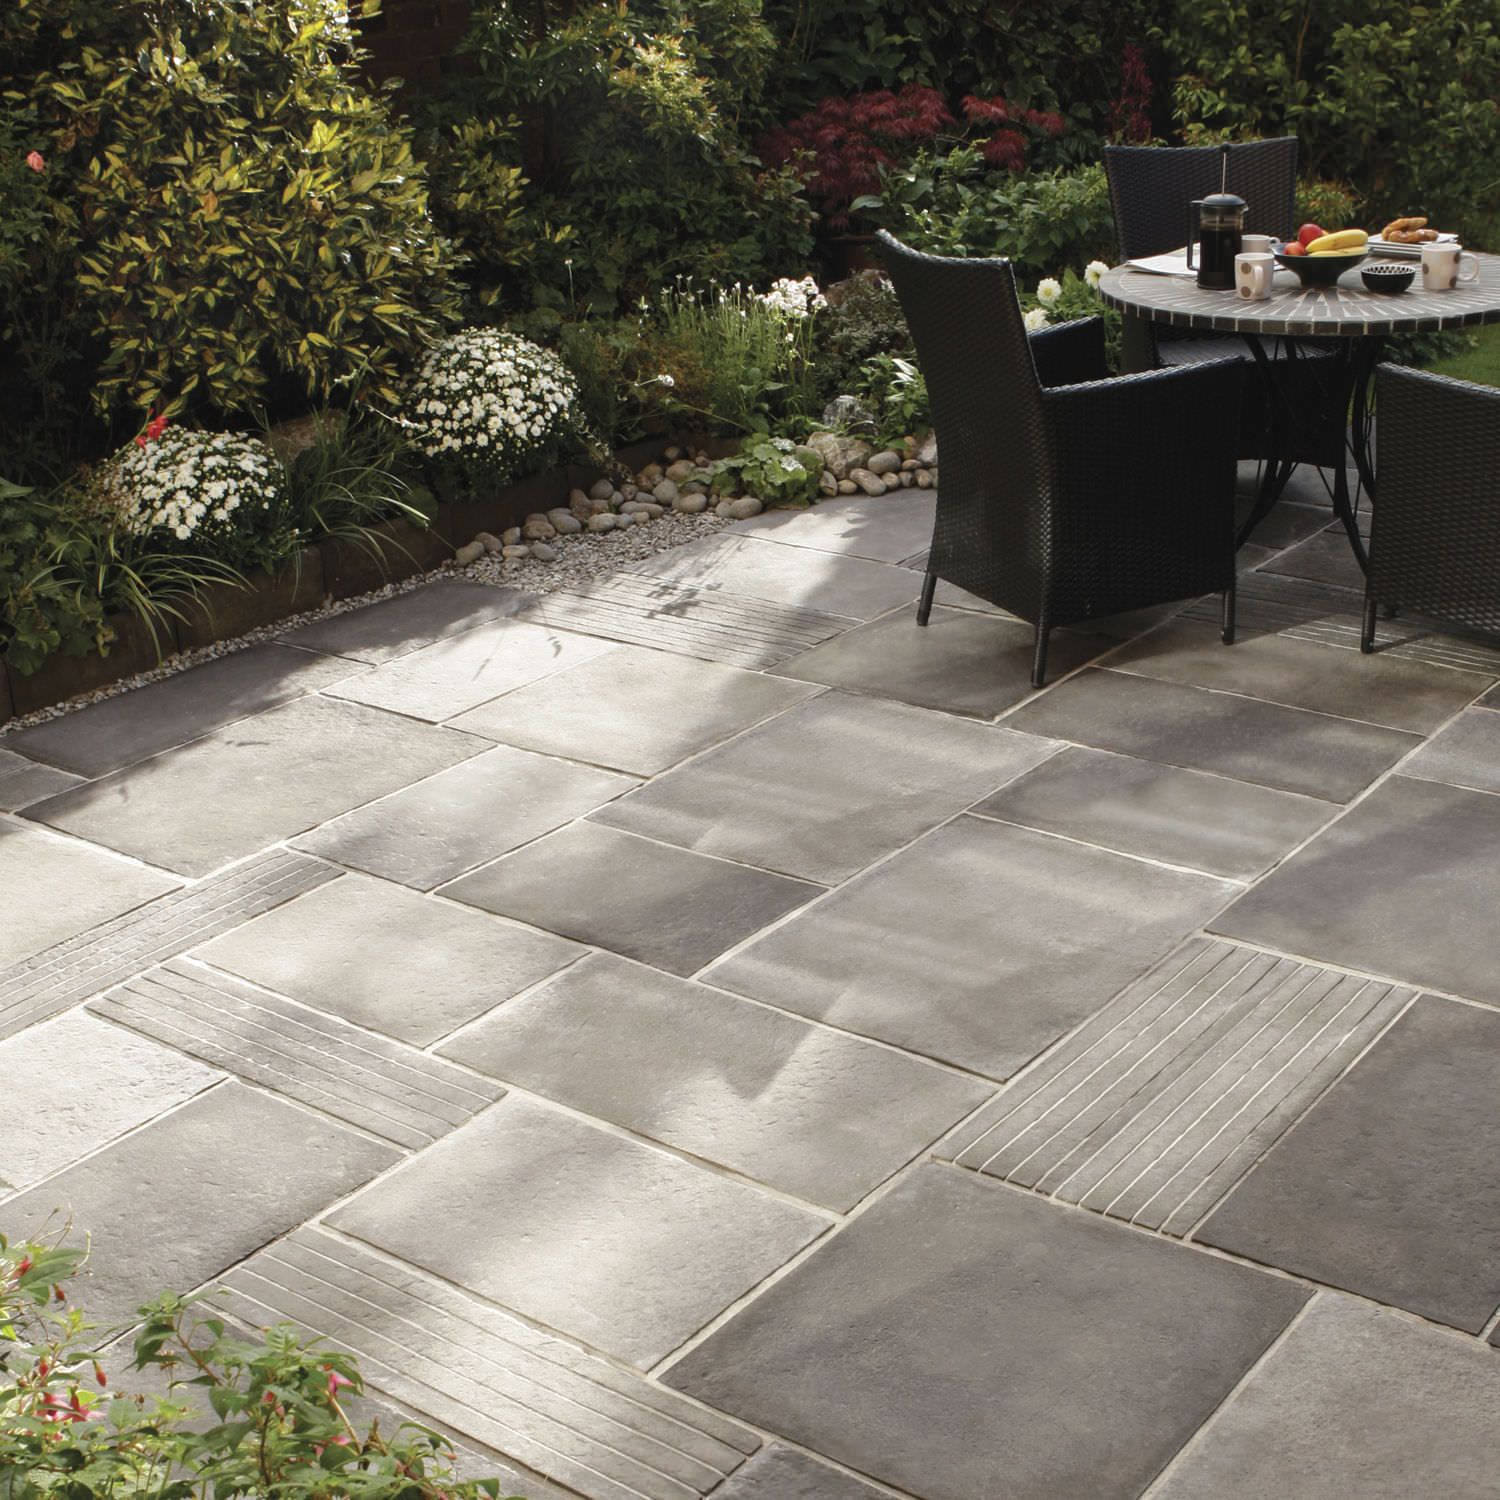 Stone Paver Walkway For External Floors